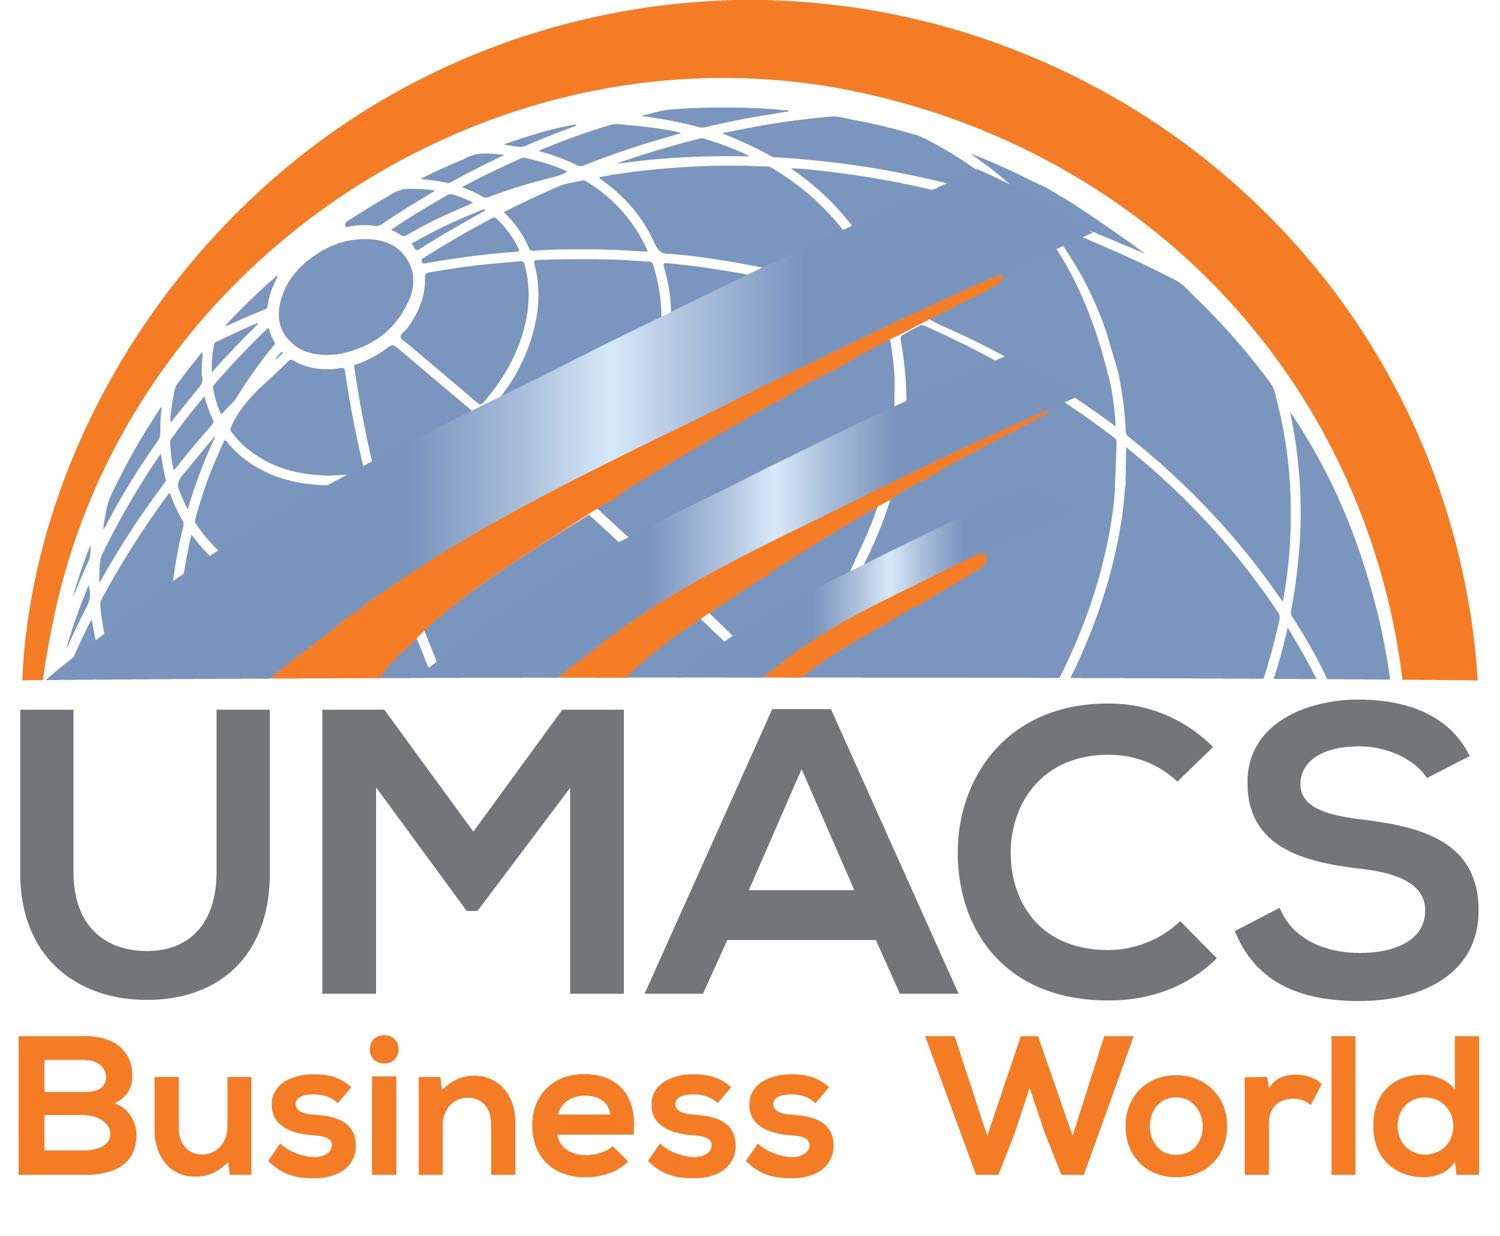 UMACS Business World